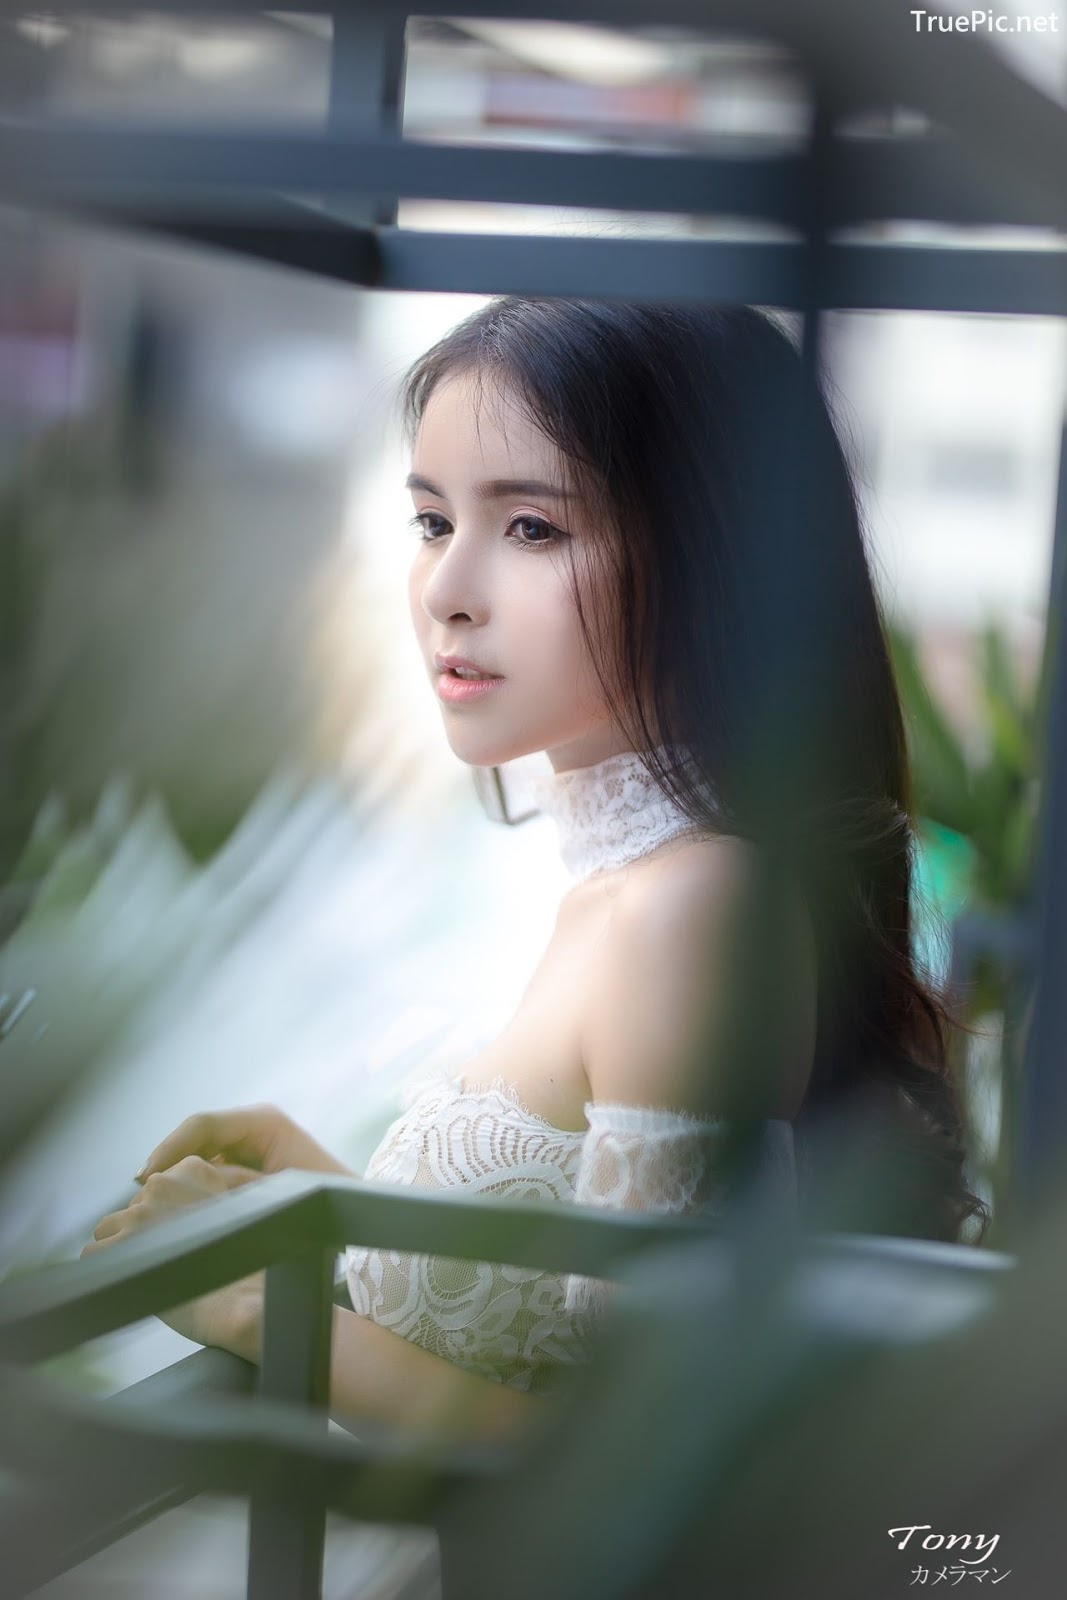 Image-Thailand-Beautiful-Model-Soithip-Palwongpaisal-Transparent-Lace-Crop-Top-And-Jean-TruePic.net- Picture-4